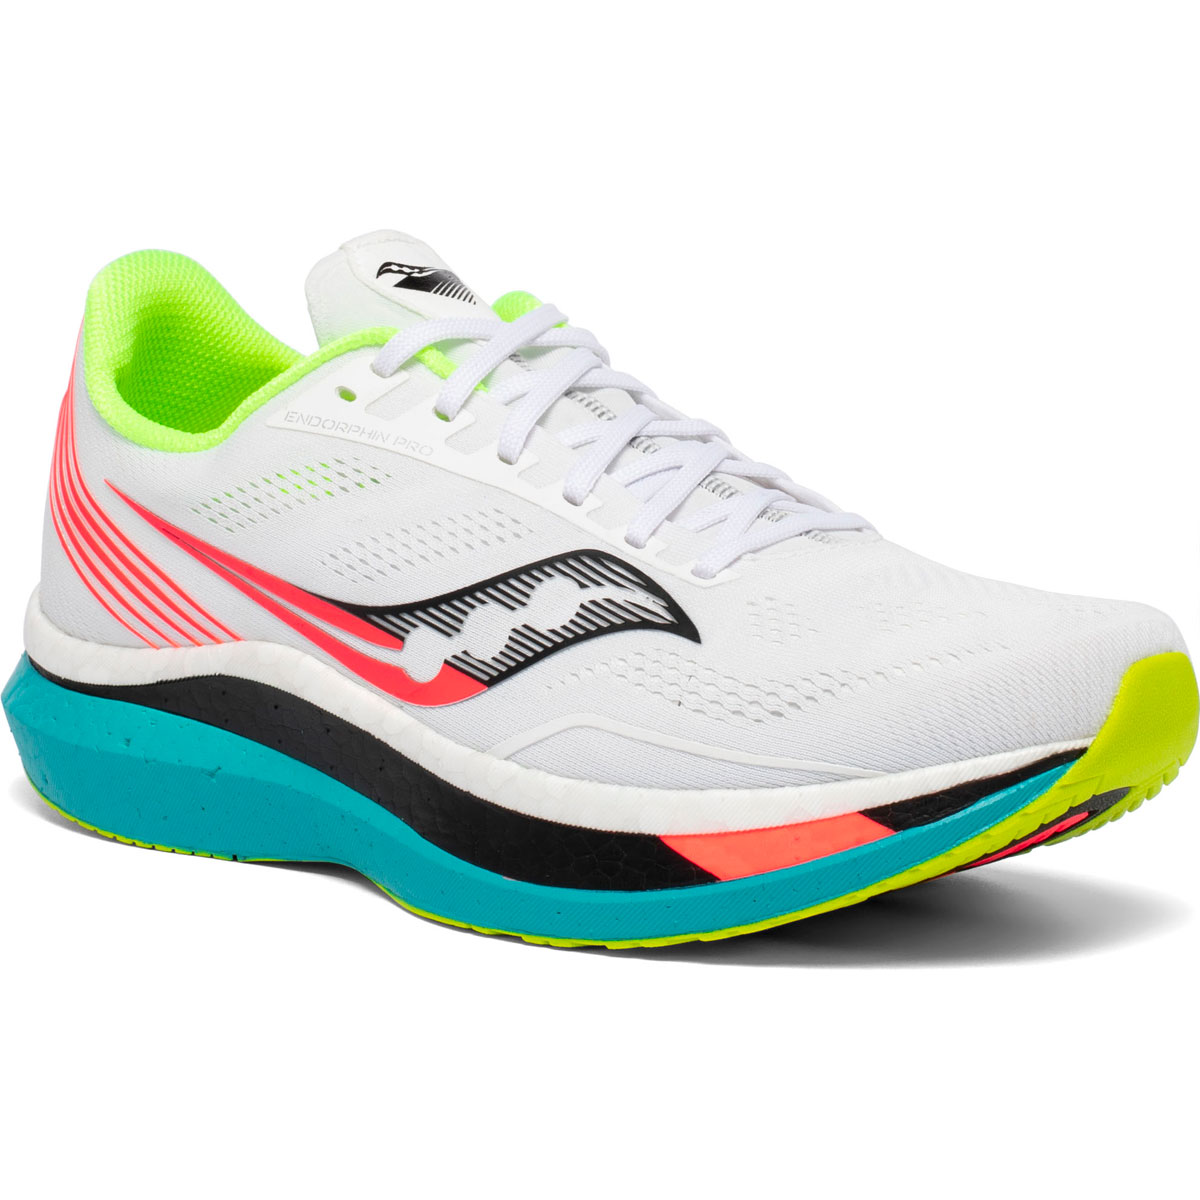 Men's Saucony Endorphin Pro Running Shoe - Color: White Mutant (Regular Width) - Size: 7, White Mutant, large, image 2